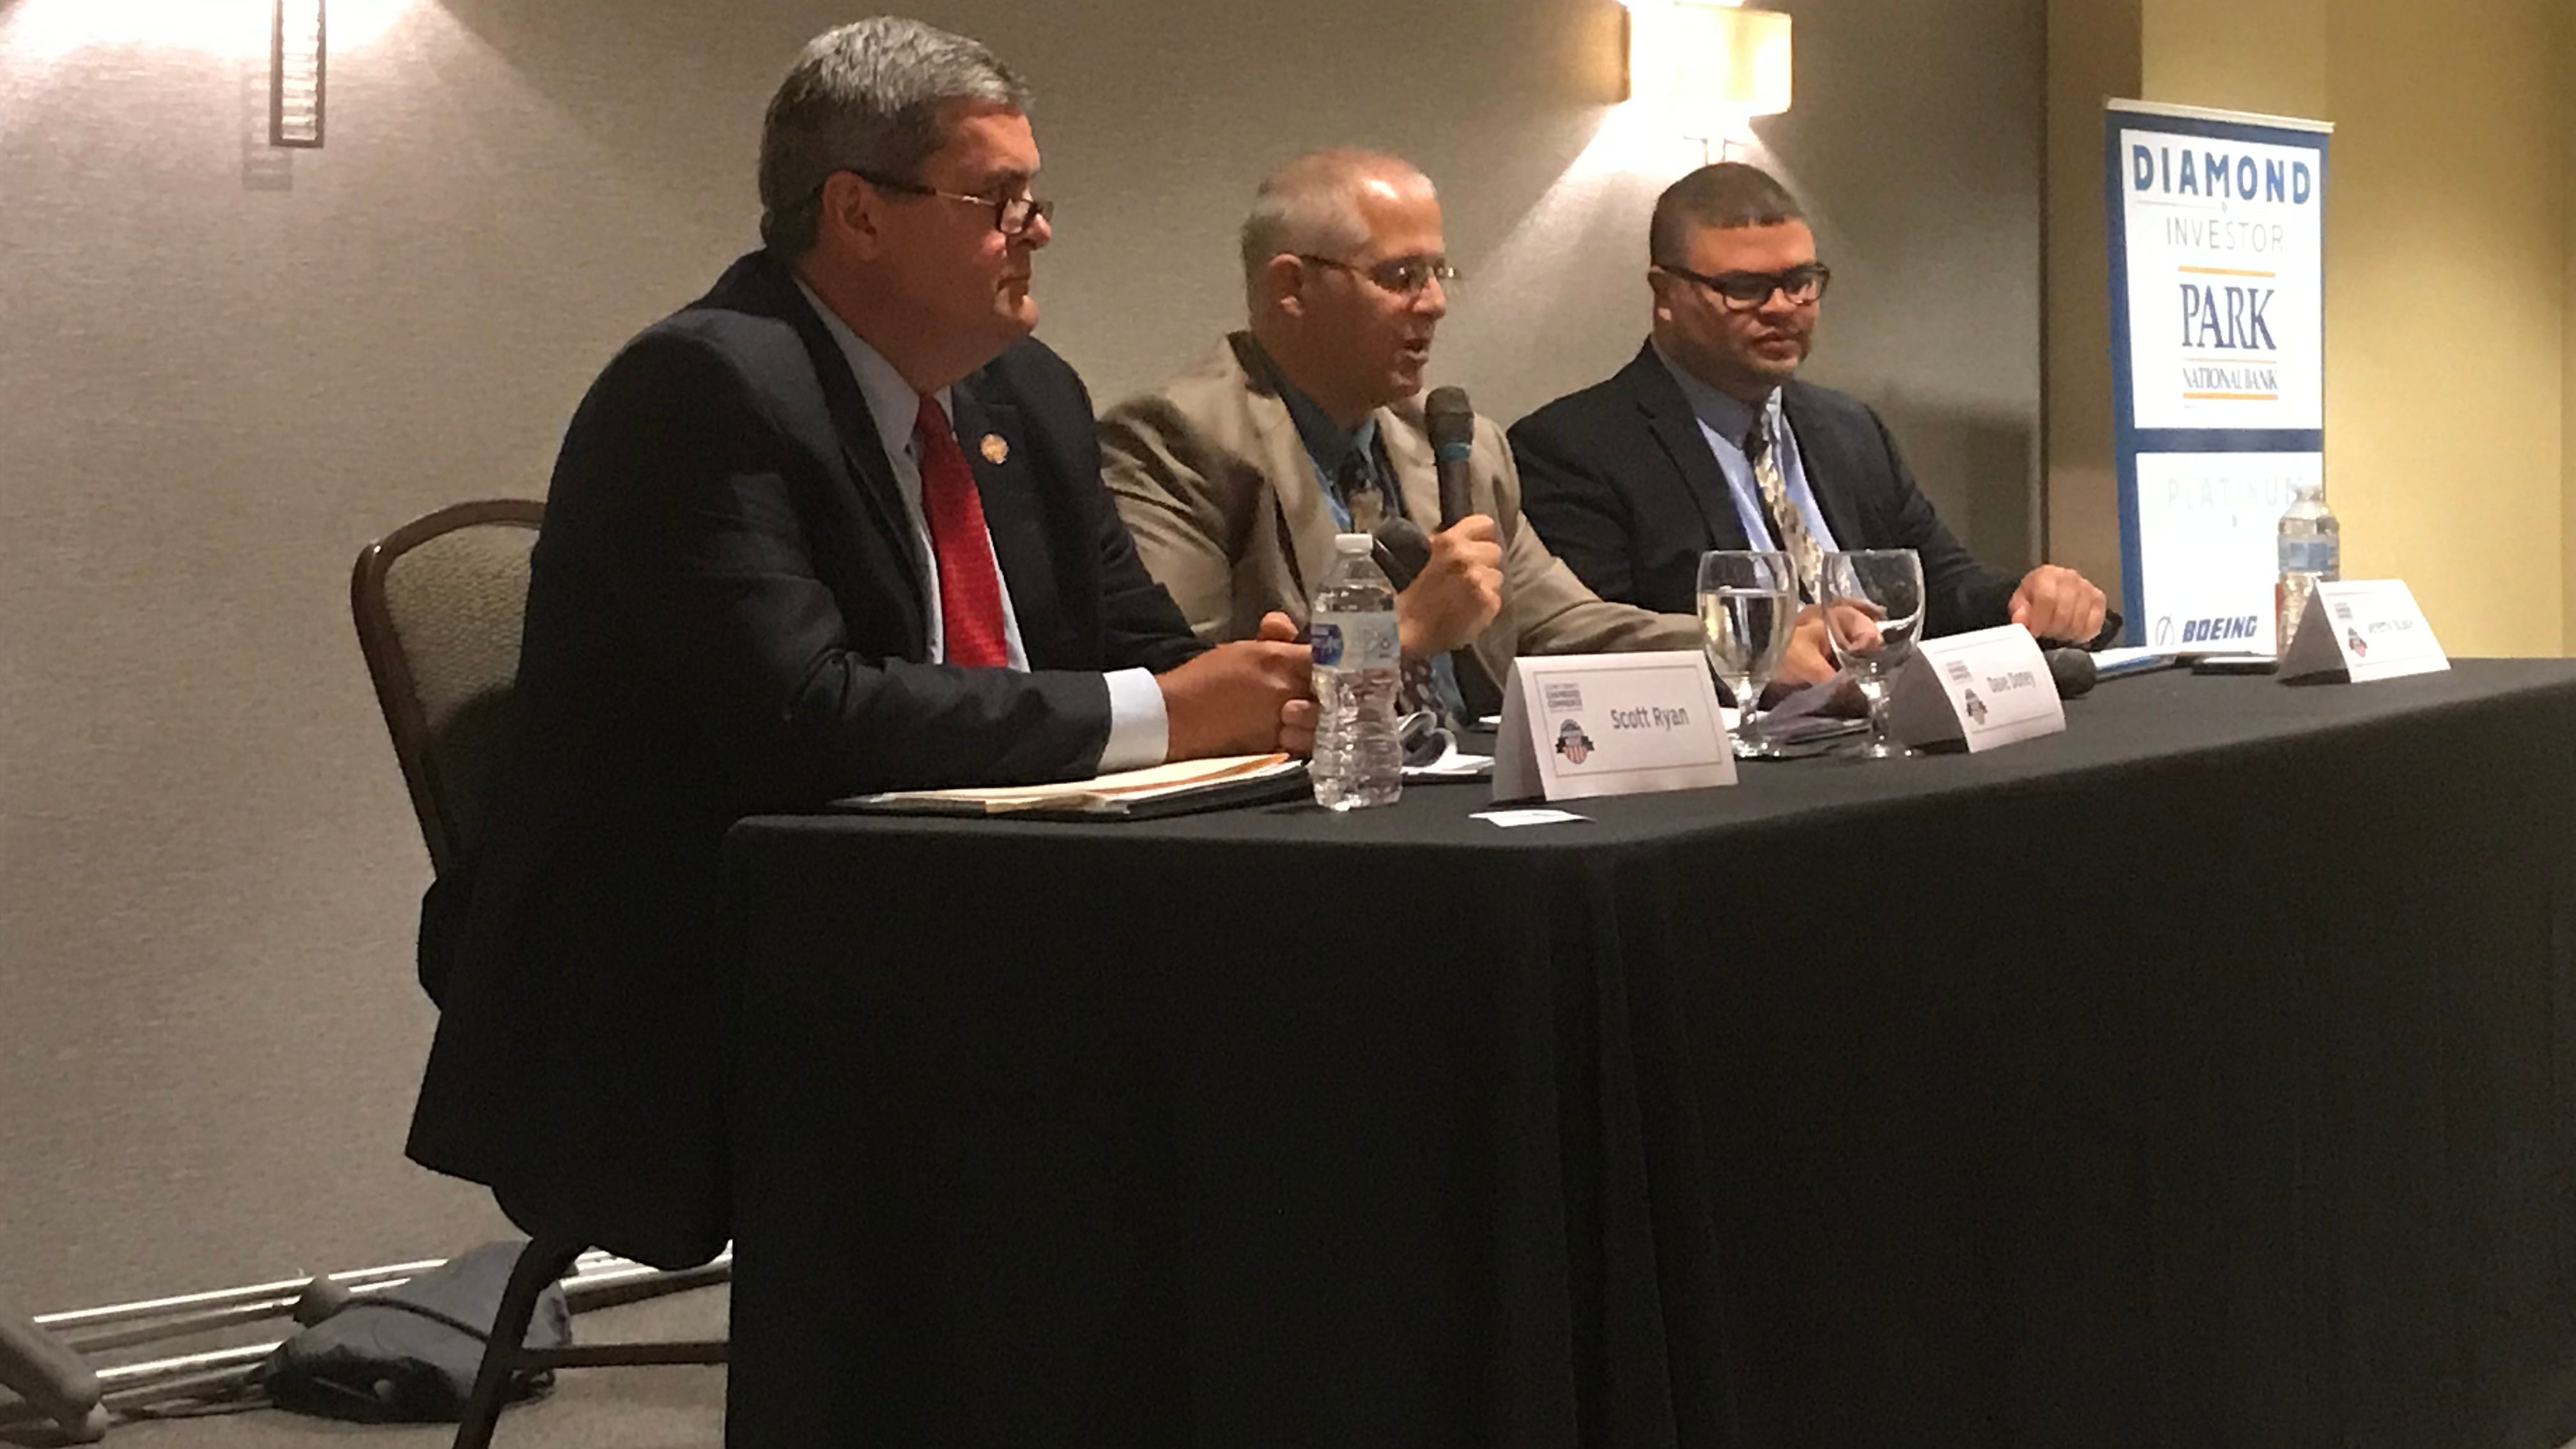 Candidates spar on Issue 1, courthouse lights at Licking County debate